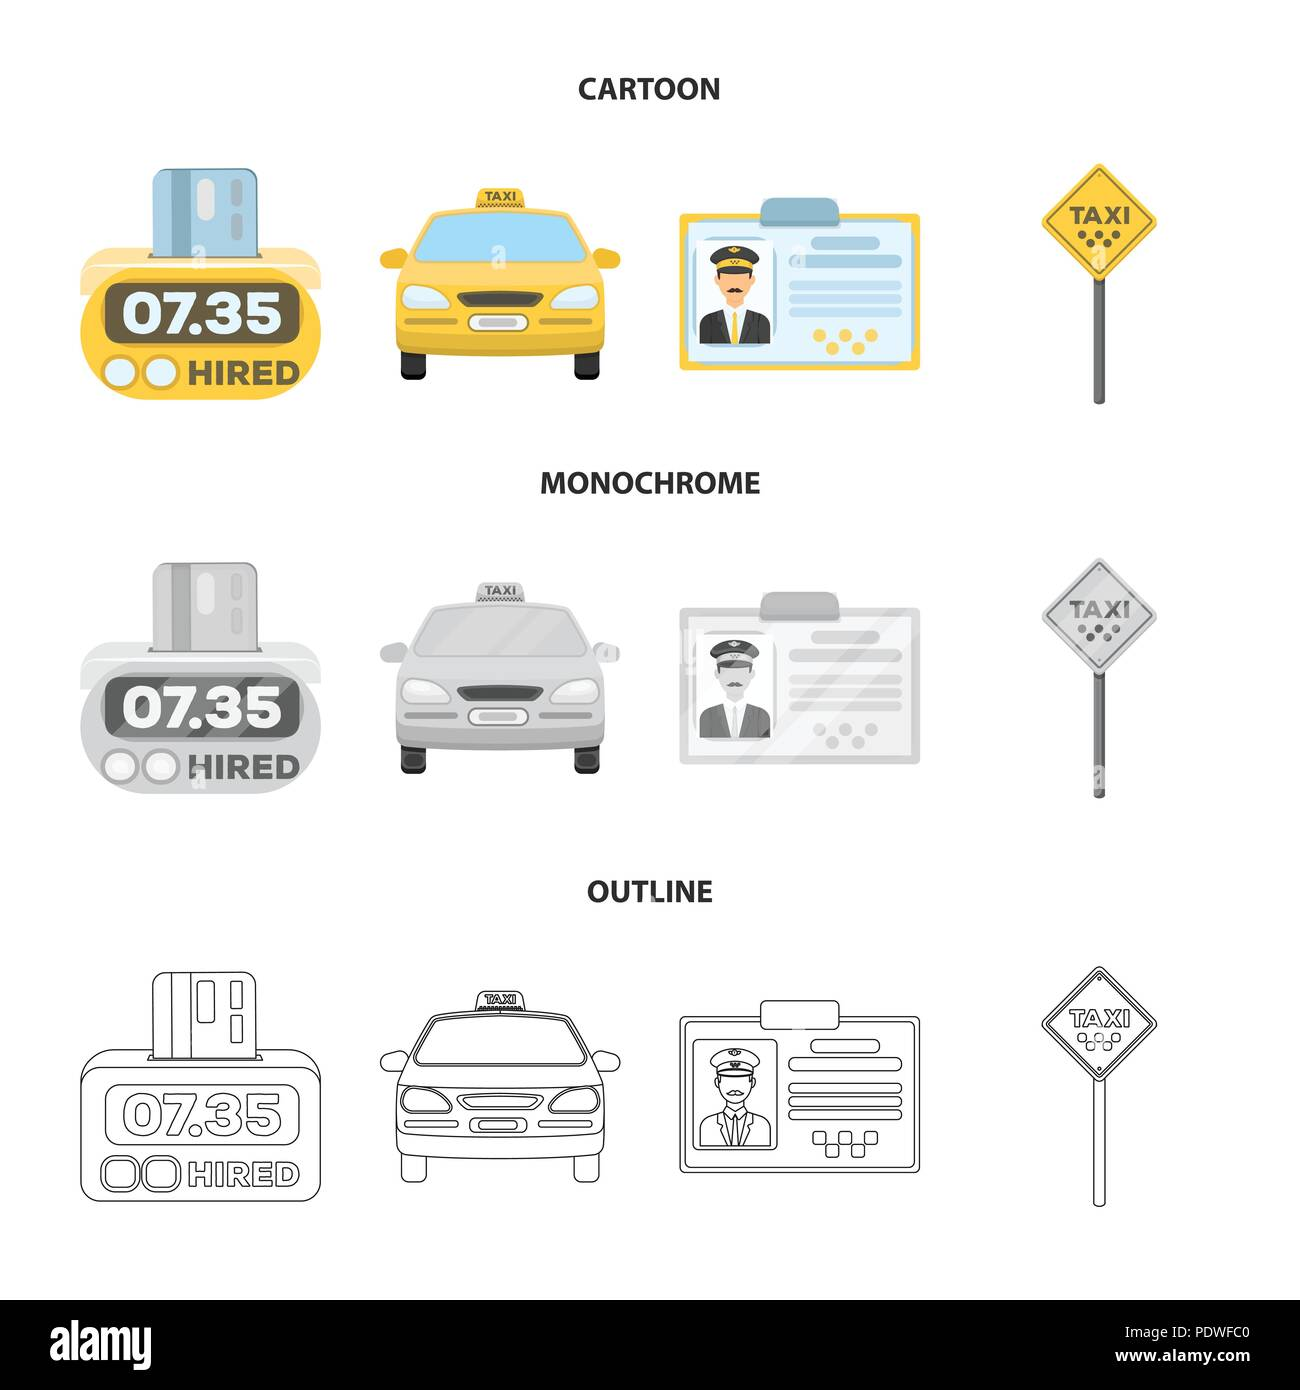 The counter of the fare in the taxi, the taxi car, the driver badge, the parking lot of the car. Taxi set collection icons in cartoon,outline,monochro - Stock Image